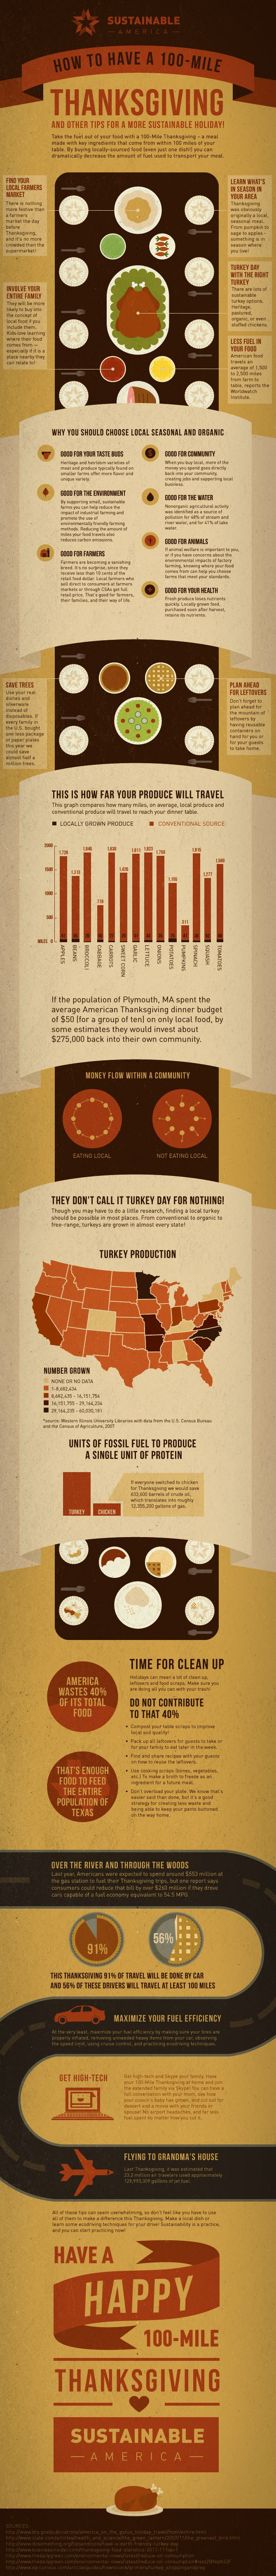 How to Have a 100-Mile ThanksgivingThanksgiving Dinner, 100Mile Holiday, Local Food, 100 Miles Thanksgiving, Holiday Infographic, 100Mile Thanksgiving, Food Infographic, Thanksgiving Infographic, Sustainable Thanksgiving